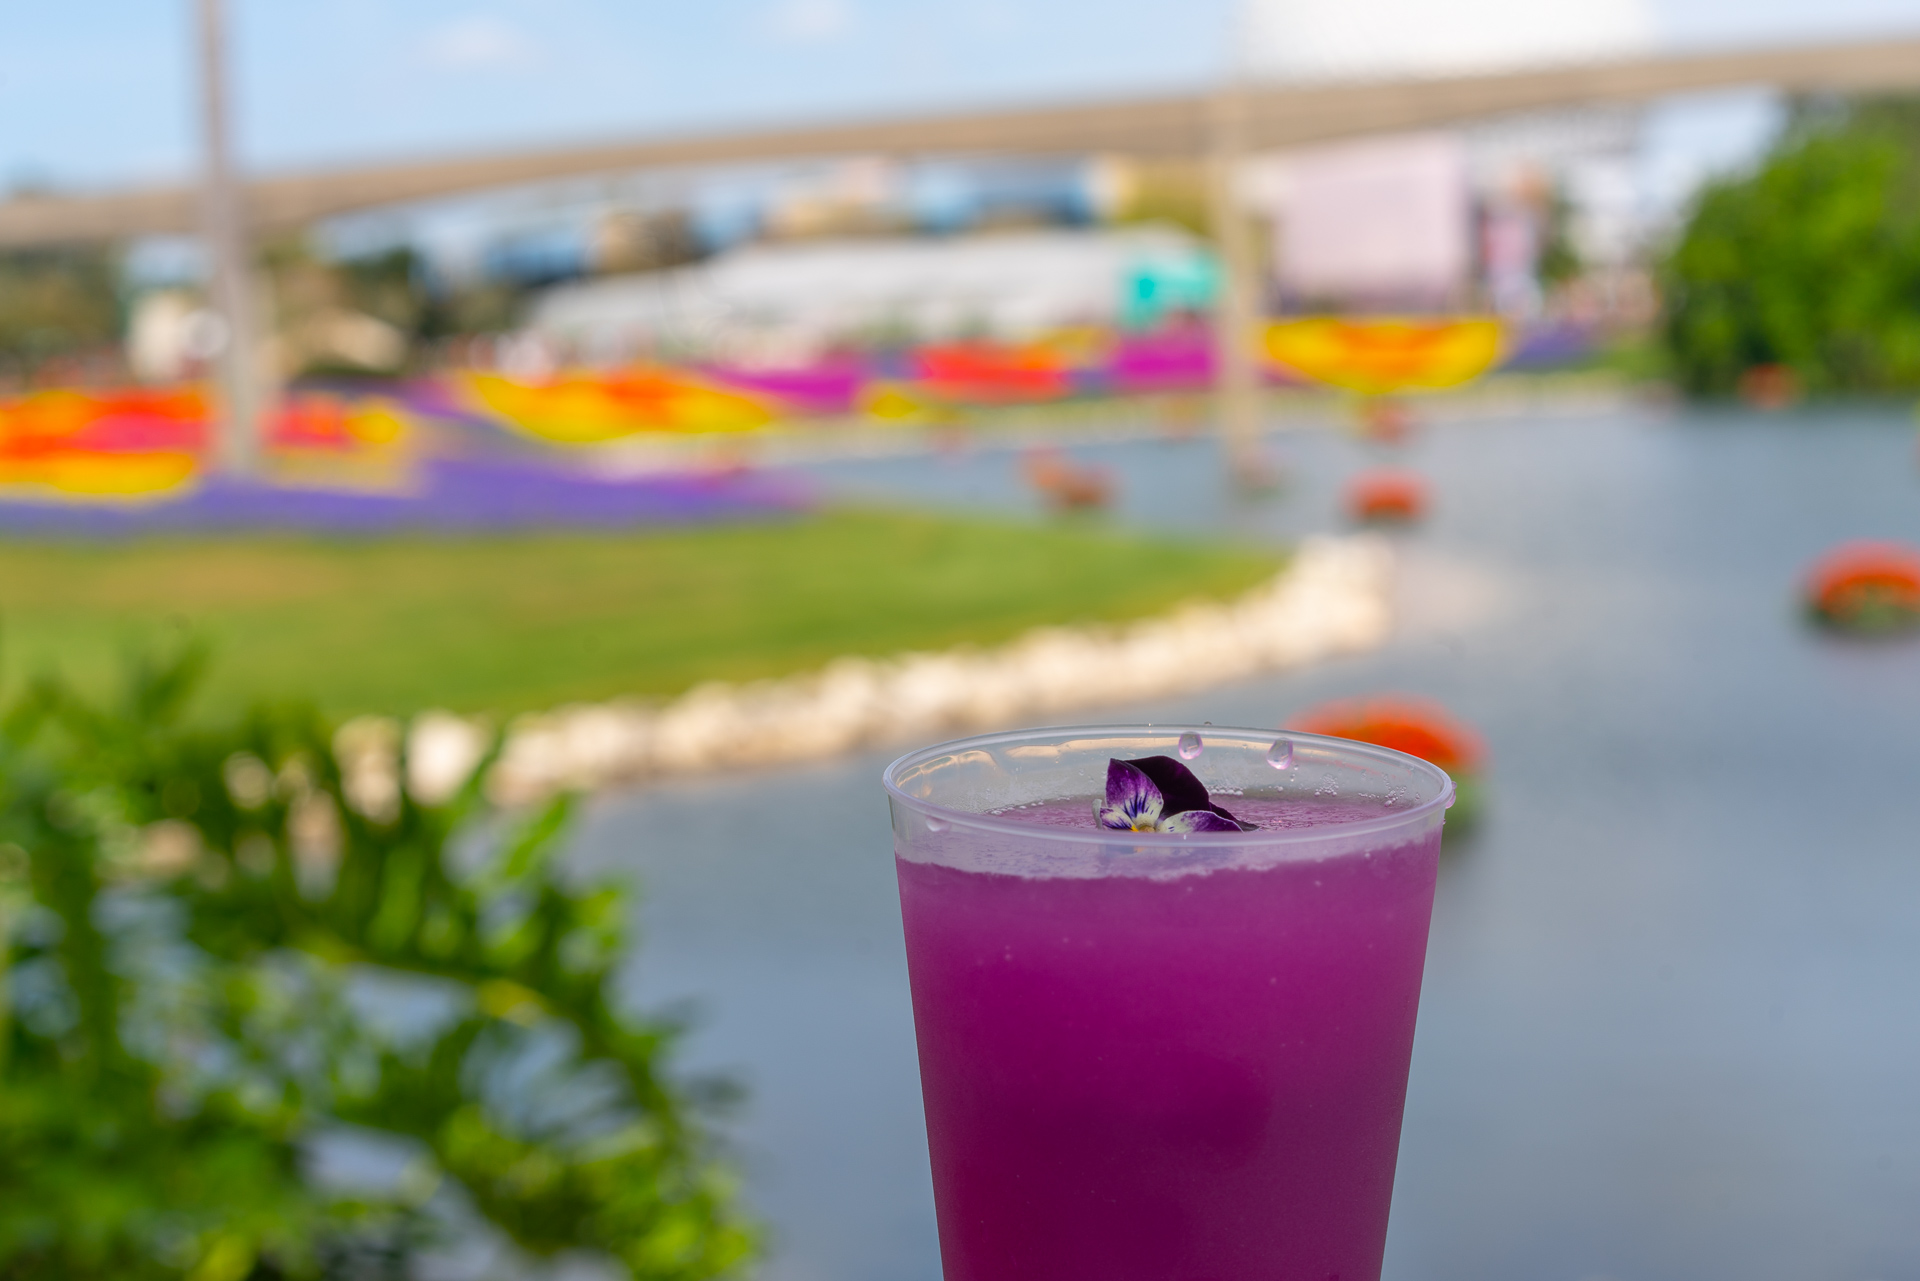 A drink at Epcot's Flower and Garden Festival at Walt Disney World